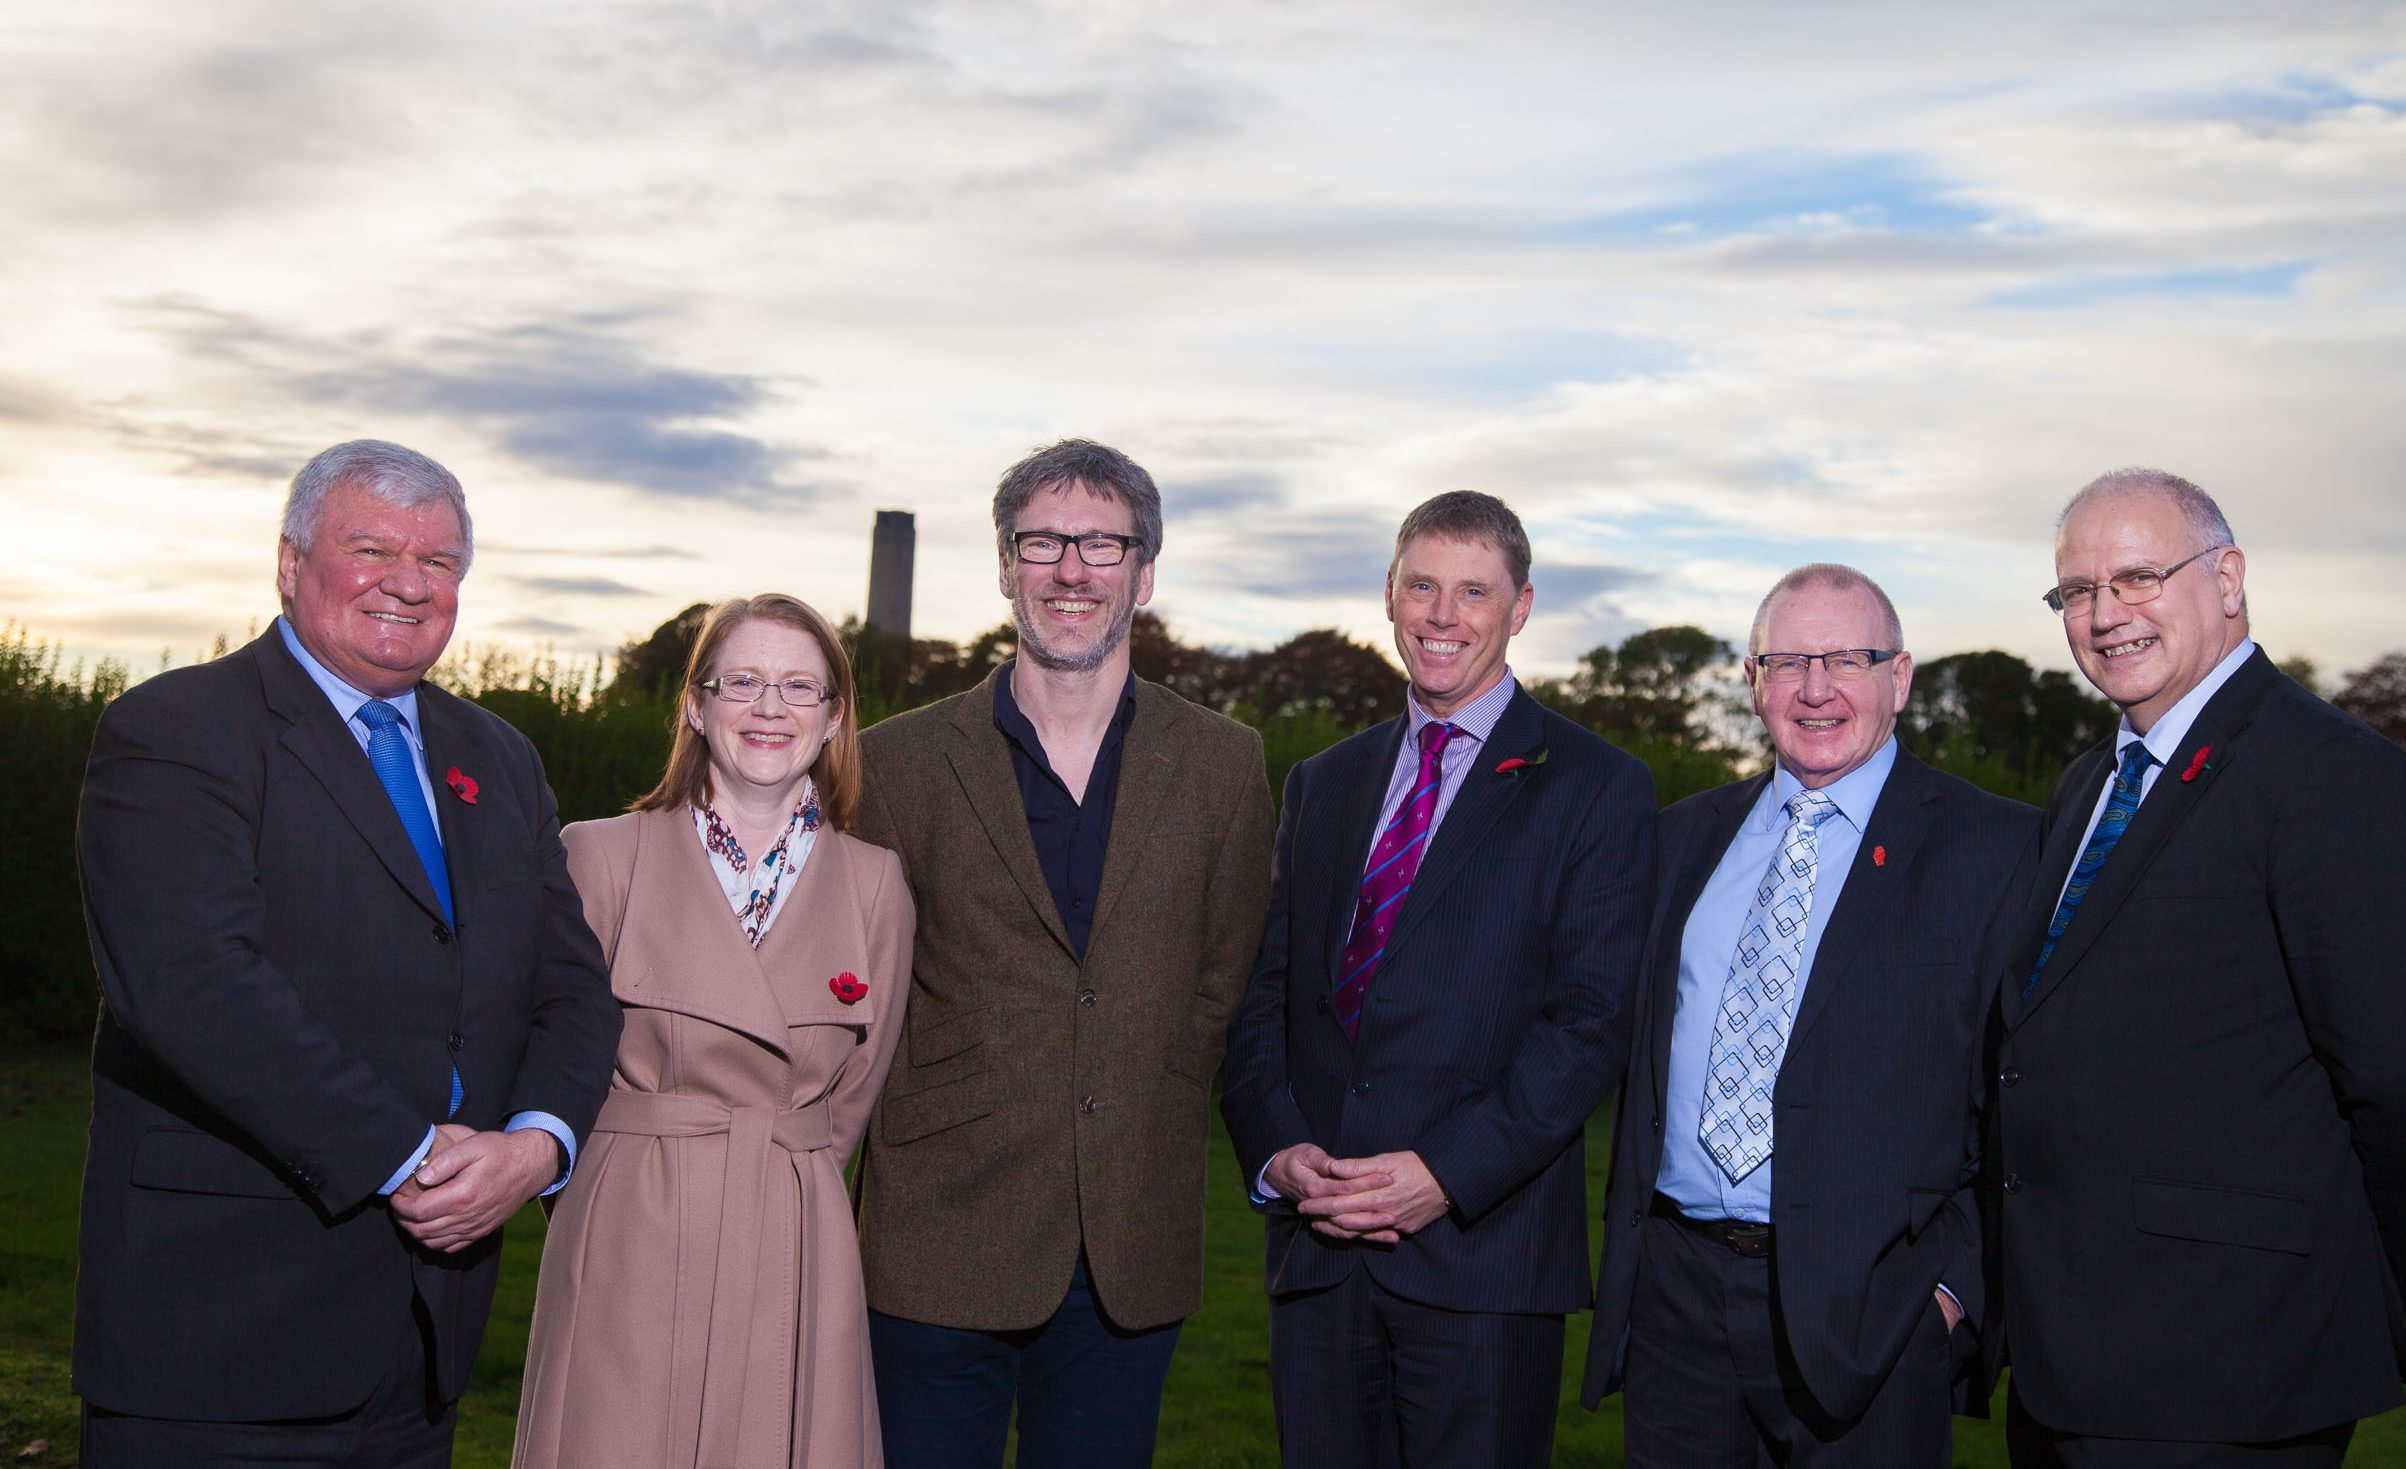 Councillor Bob Young, far right, with other delegates at the launch of the action plan